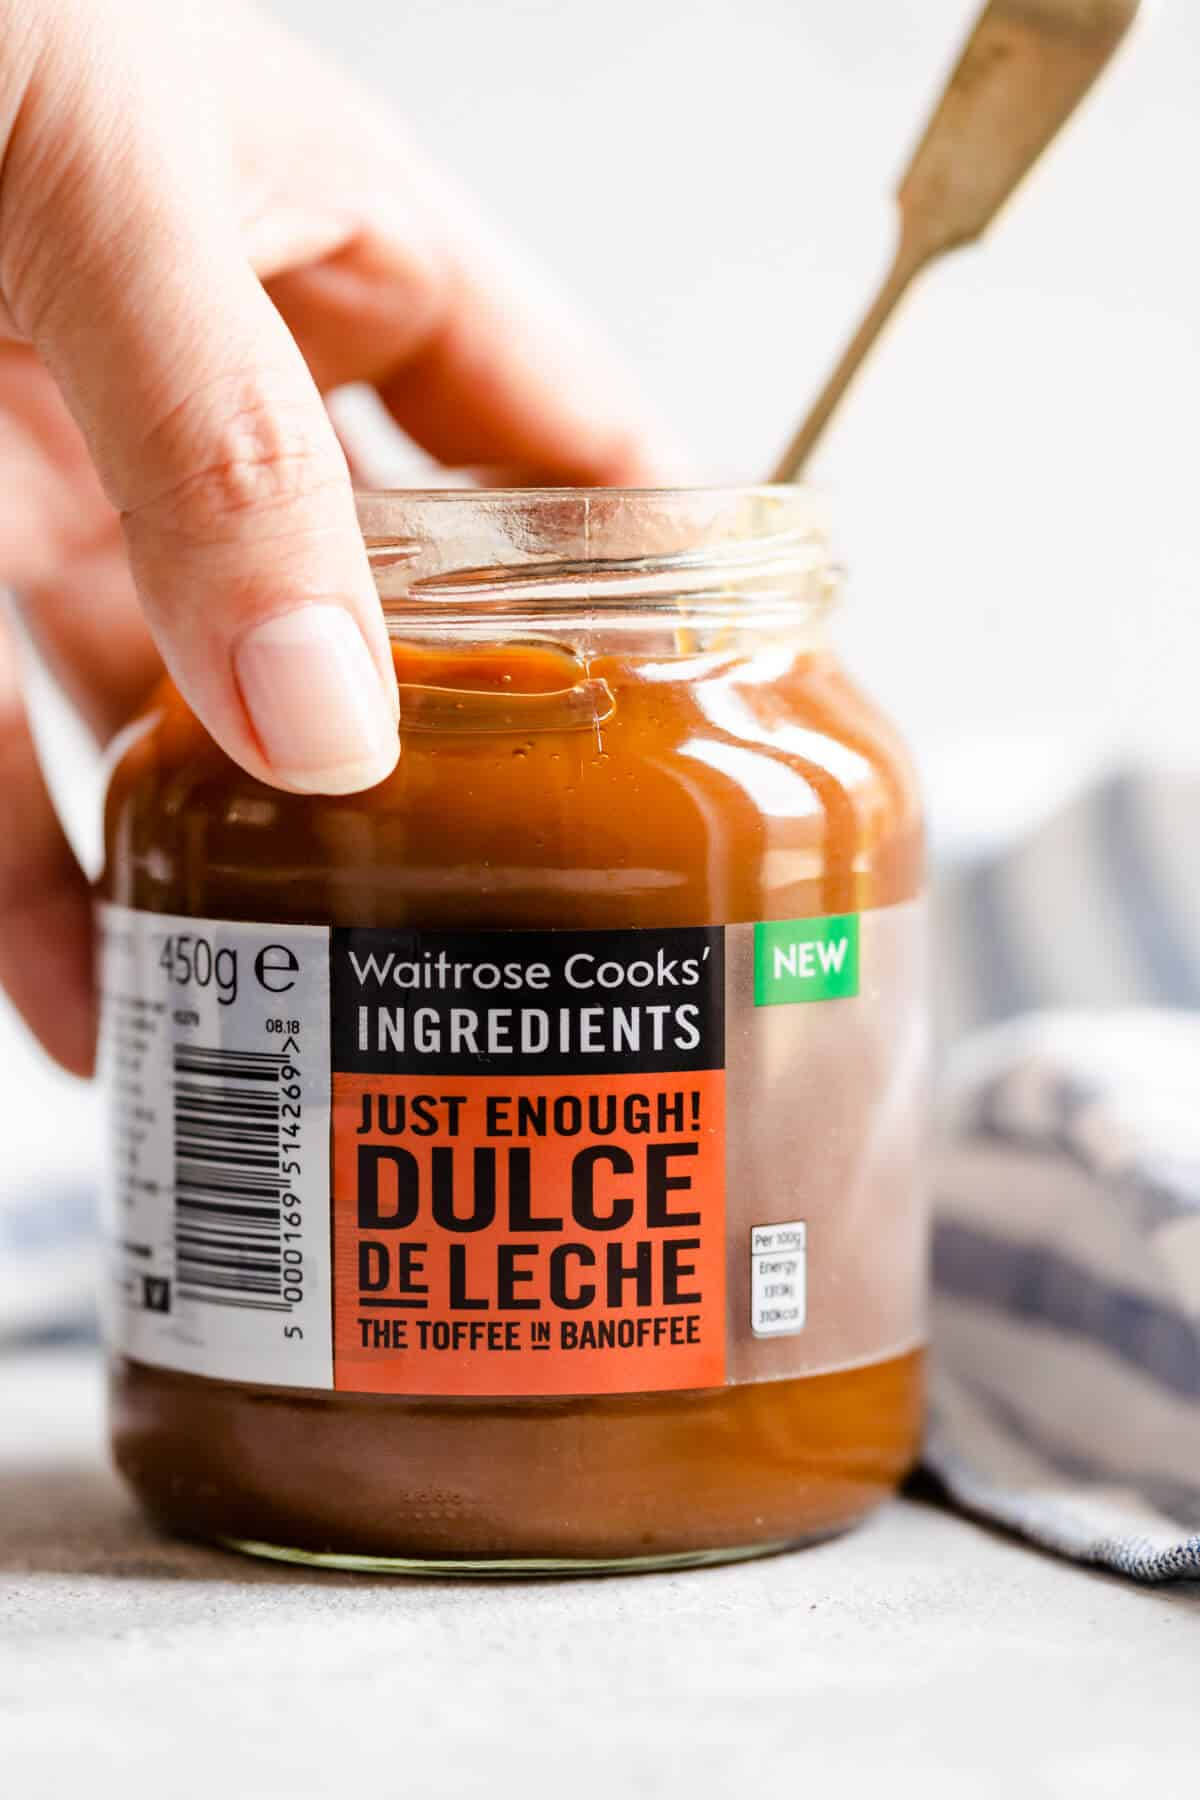 a close up of a jar of dulce de leche